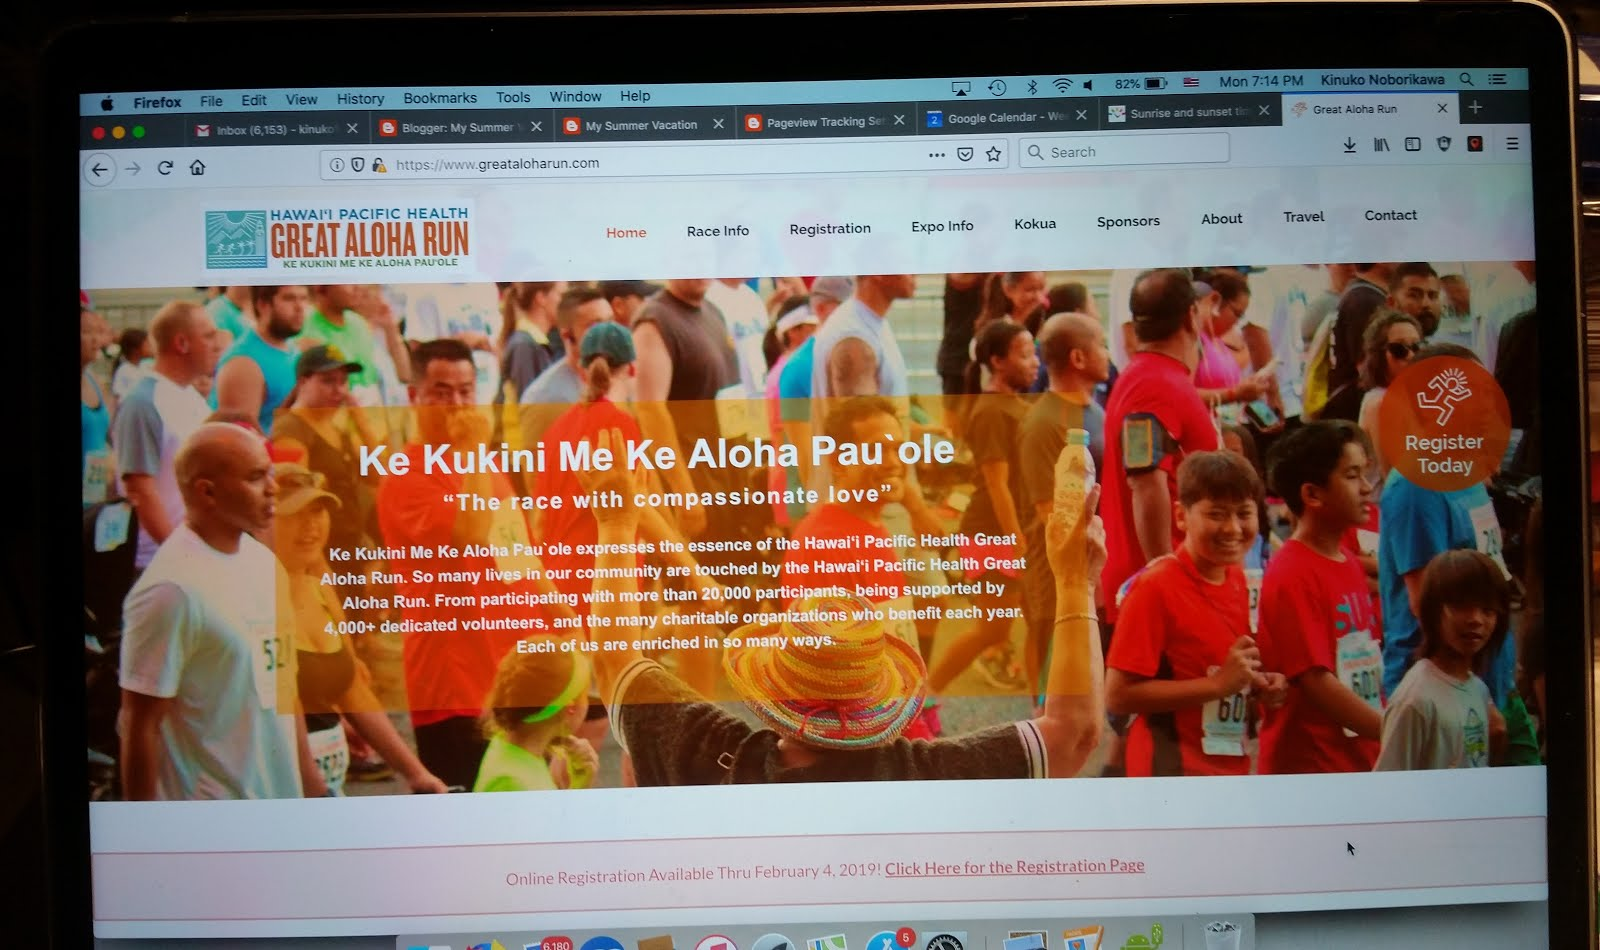 a2afbdb3c Screen shot from Great Aloha Run website.